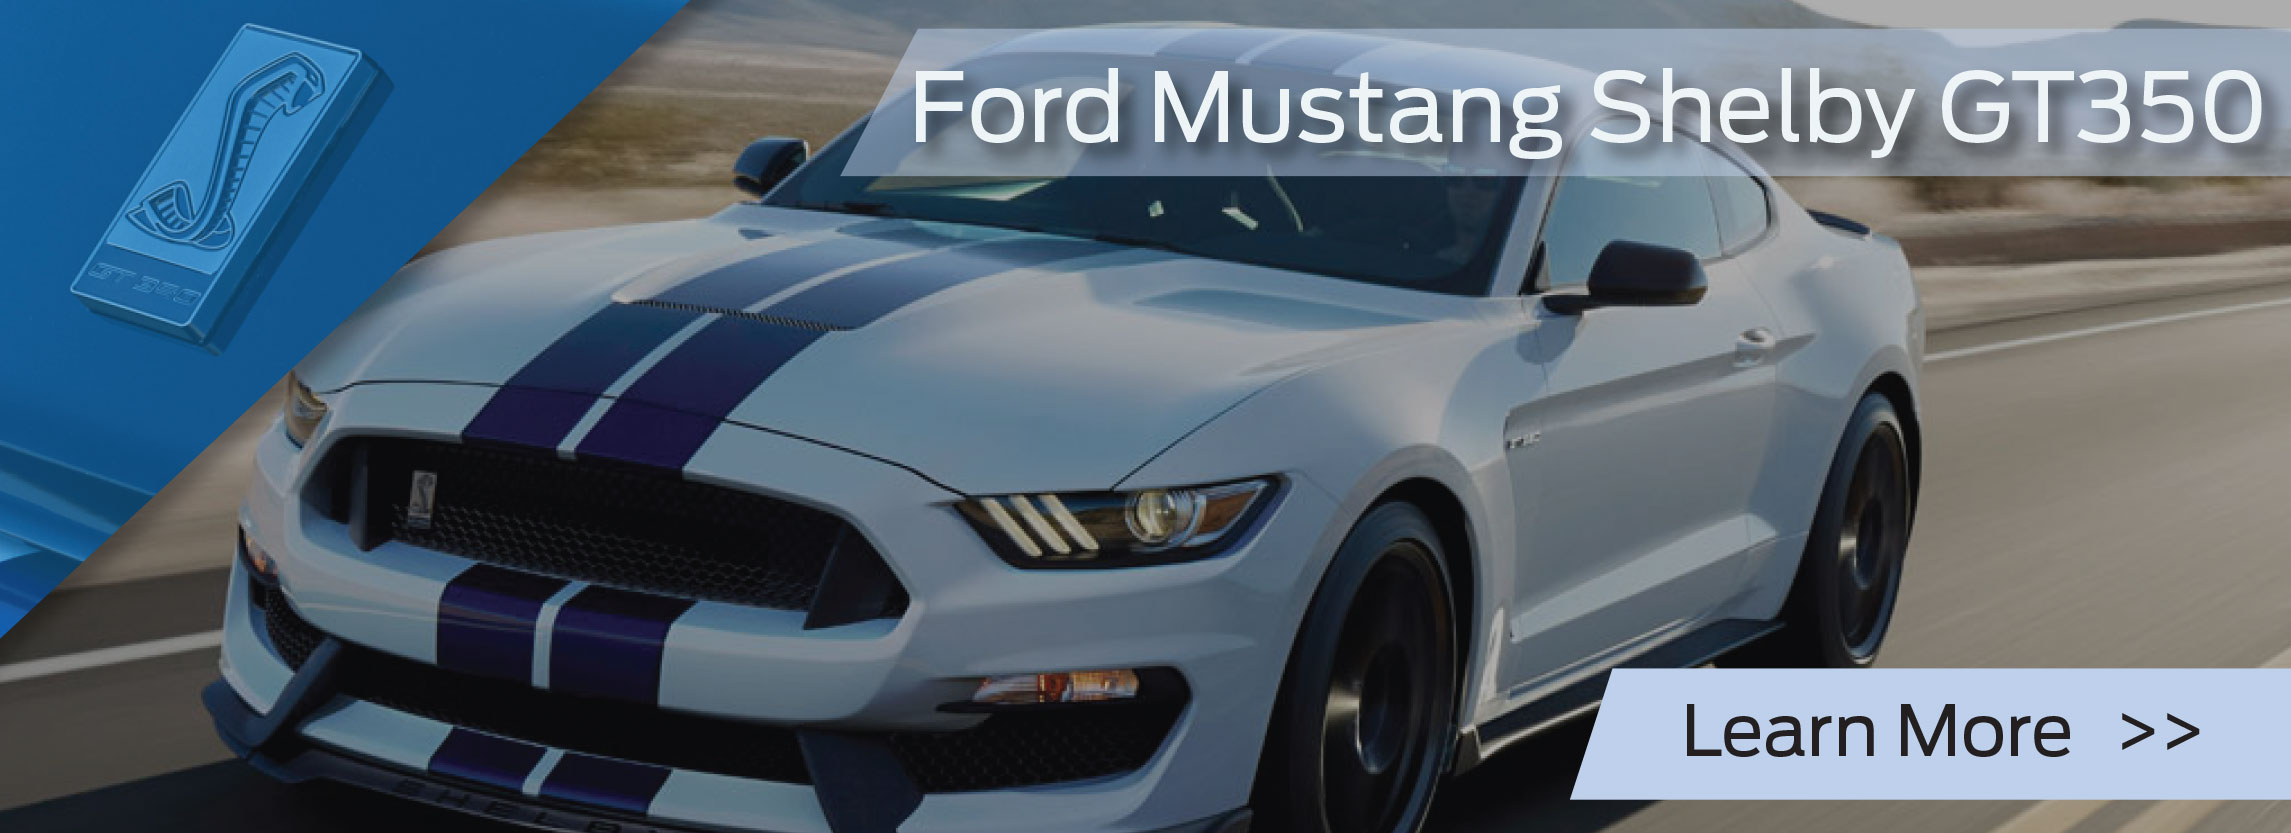 specialty ford mustang models ford mustang shelby gt350 high. Cars Review. Best American Auto & Cars Review